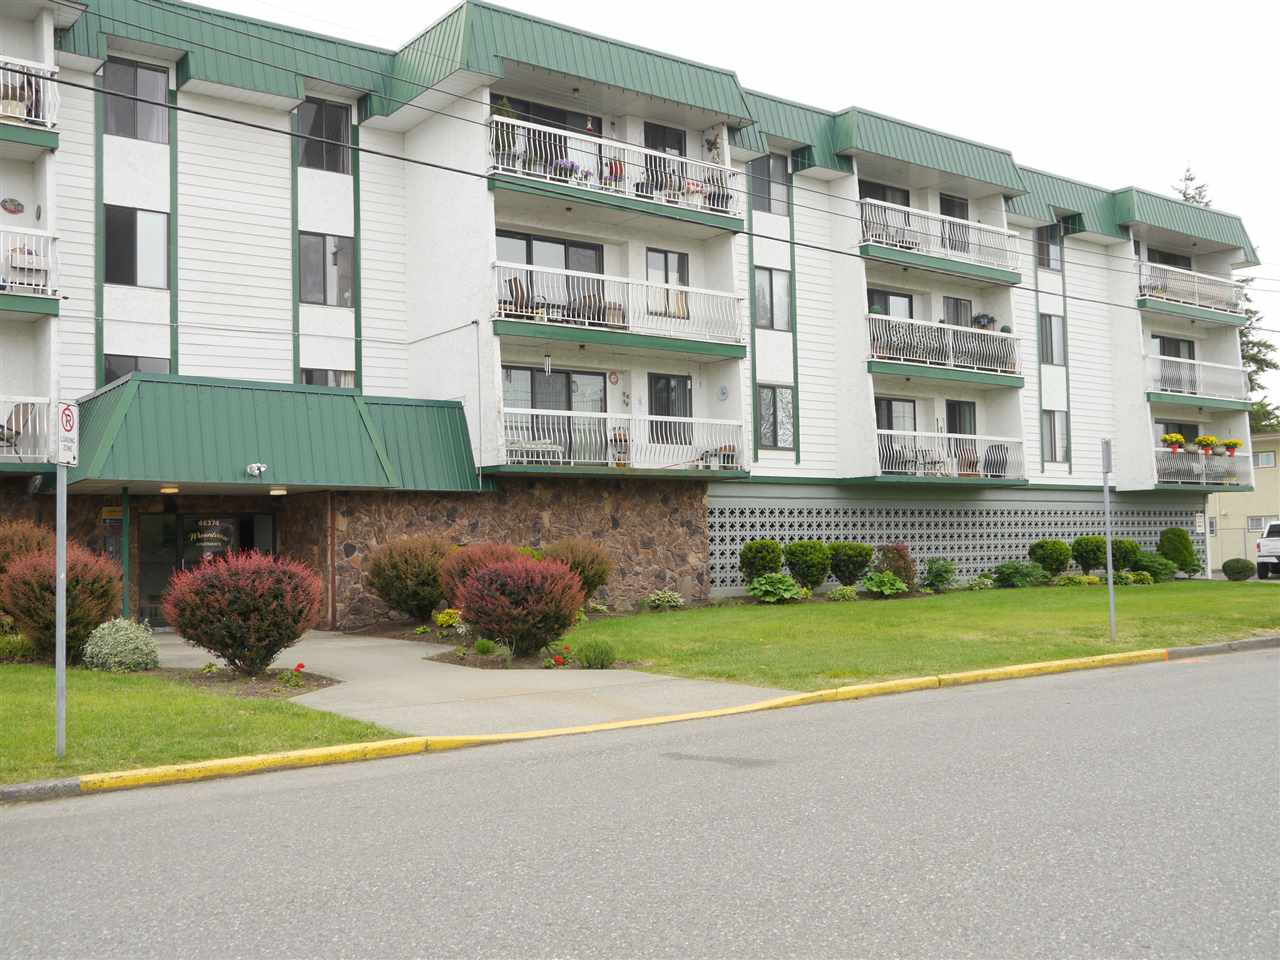 Sold: 204 - 46374 Margaret Avenue, Chilliwack, BC